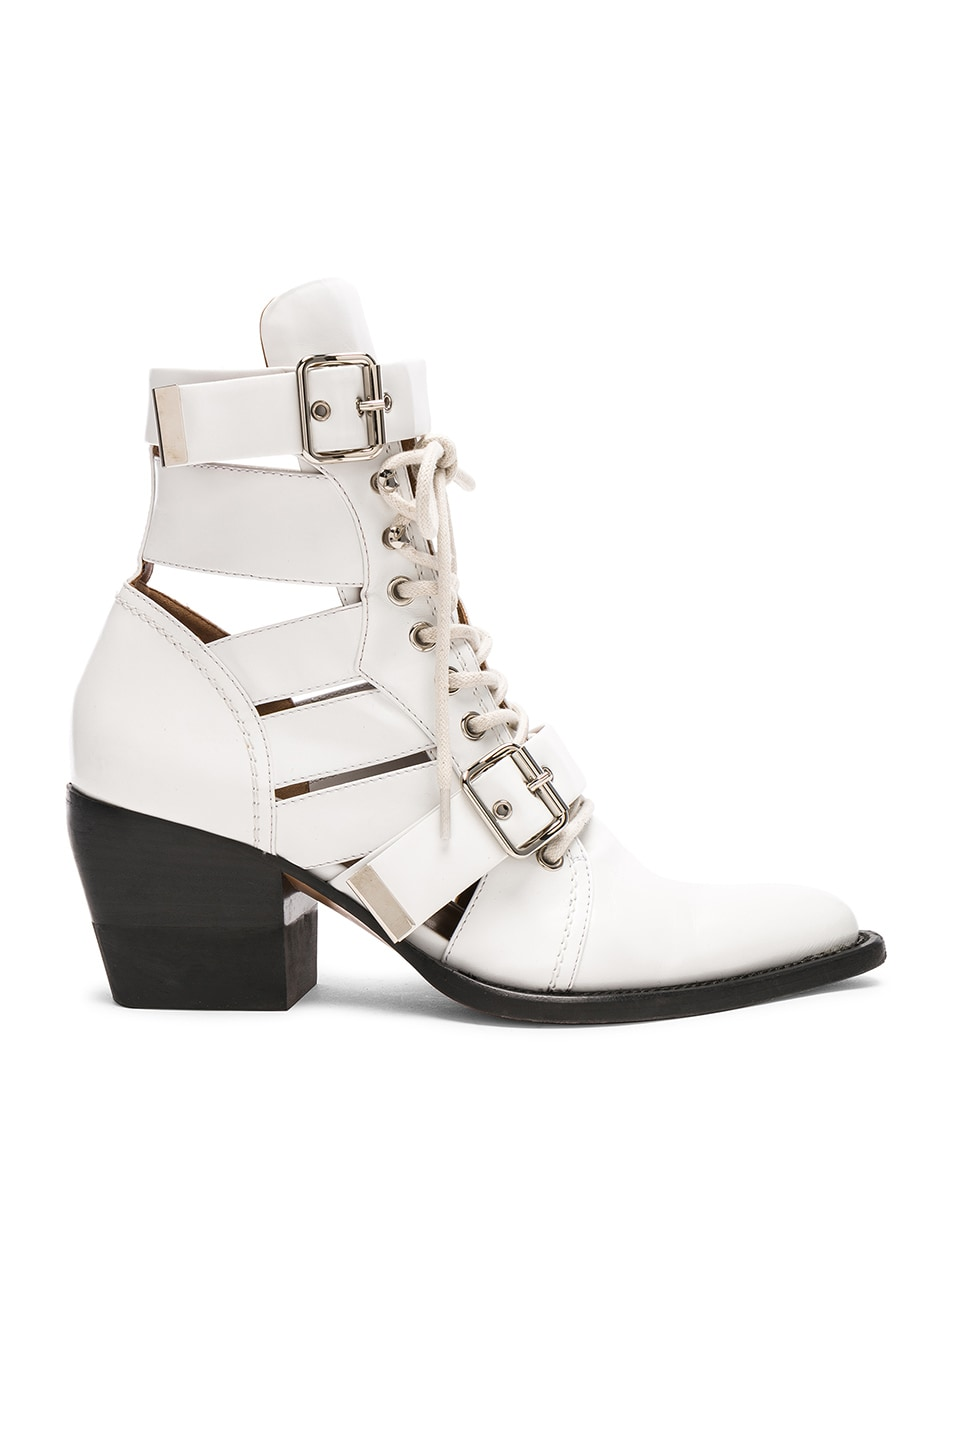 Image 1 of Chloe Leather Rylee Lace Up Buckle Boots in White